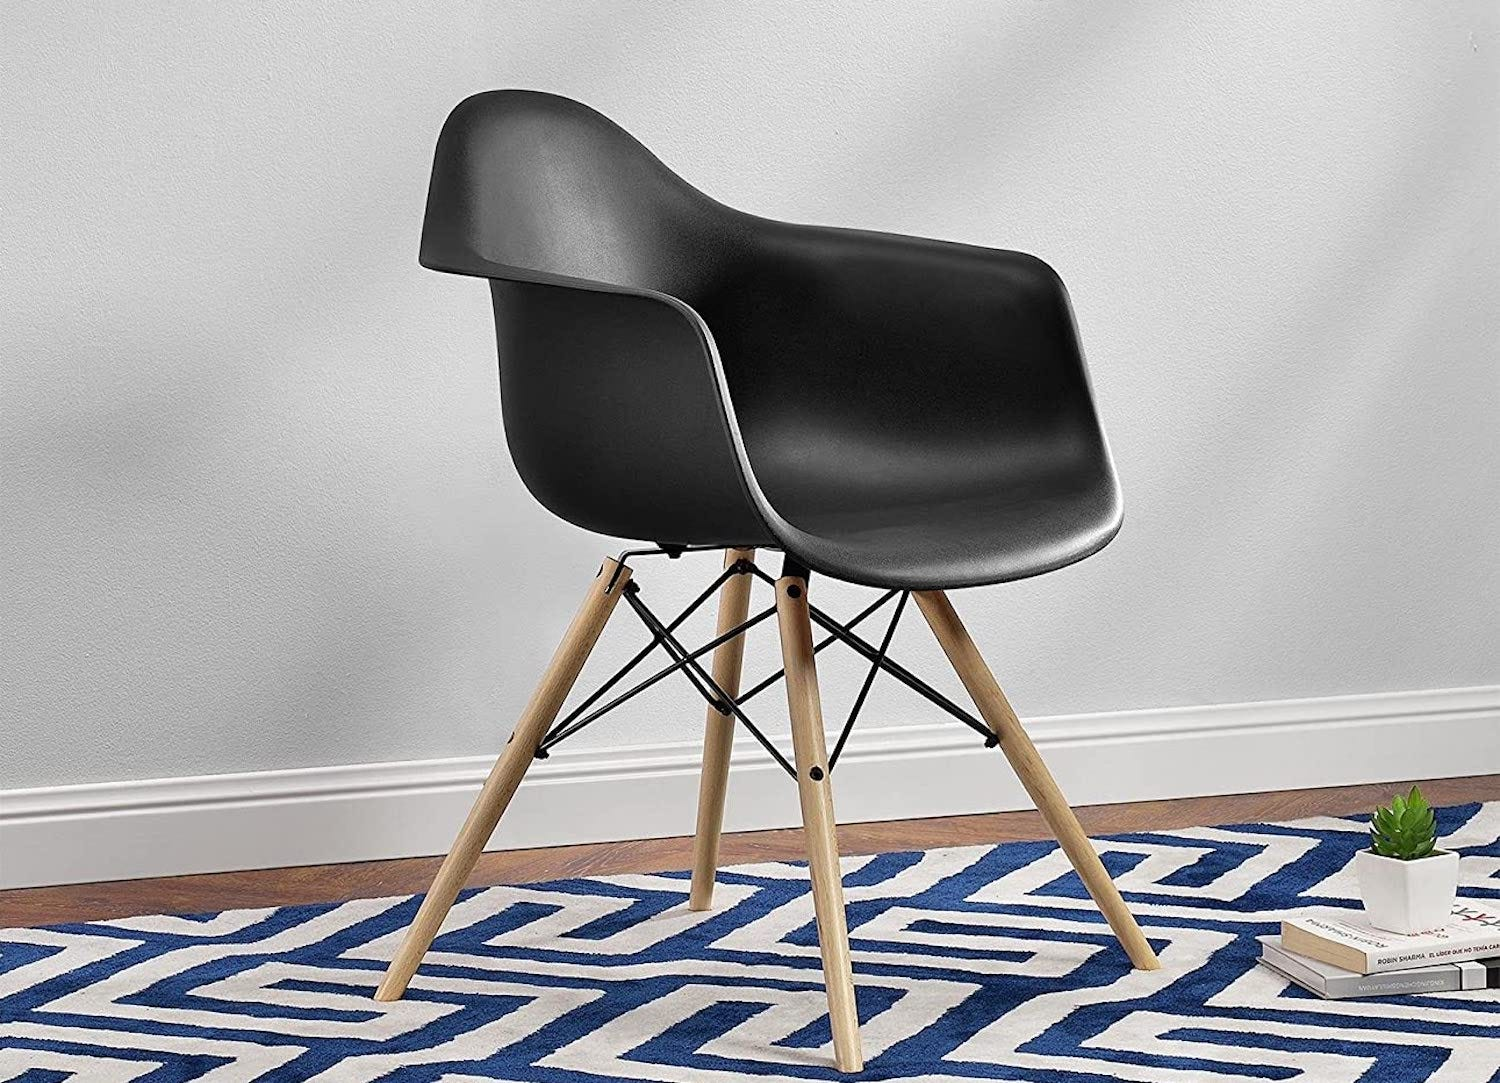 The DHP Mid-Century Modern Molded Chair in black sitting on a geometric-patterned rug.